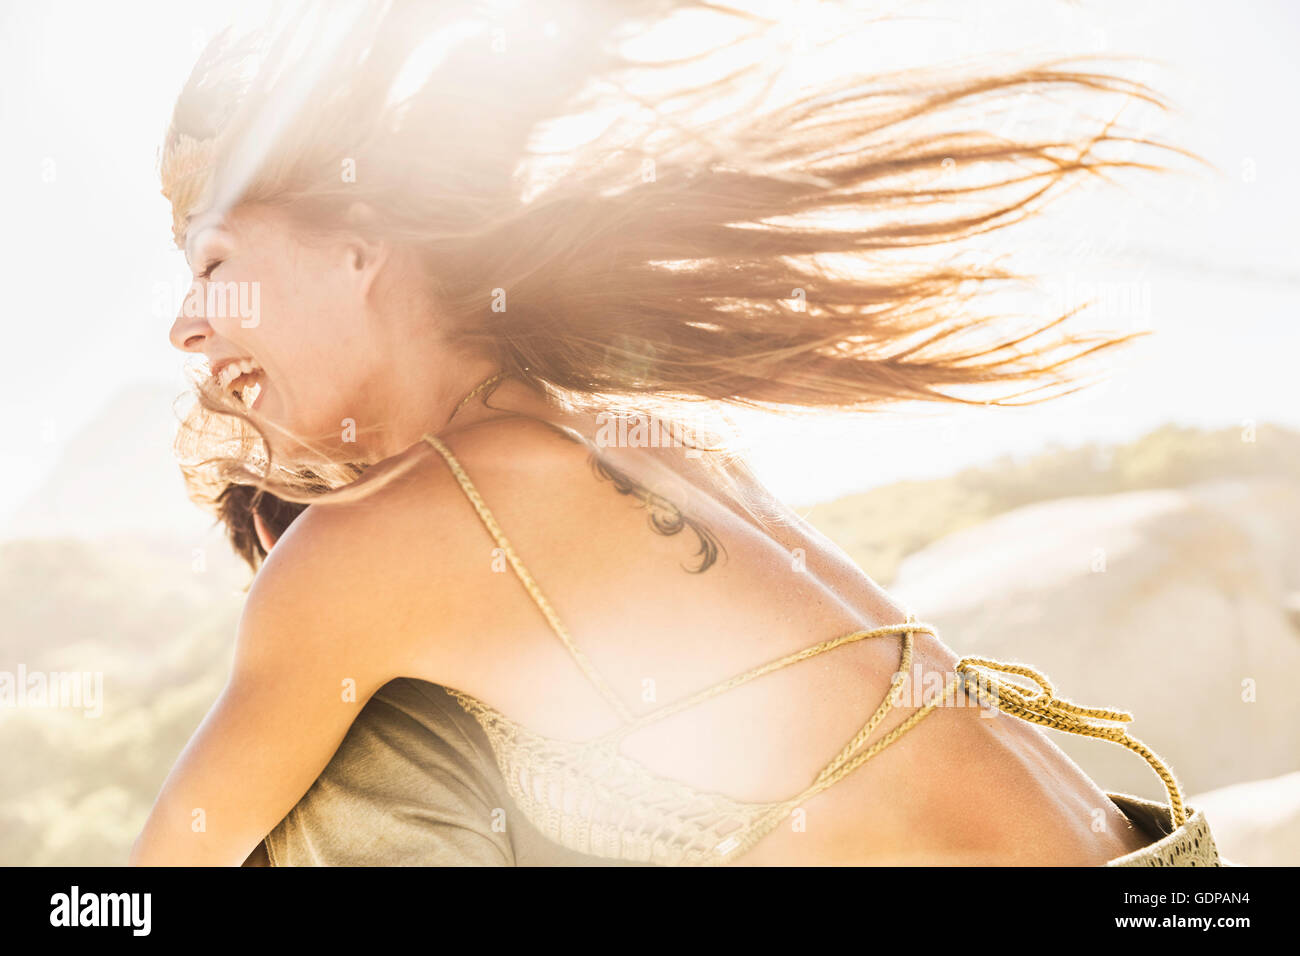 Woman getting running piggy back on sunlit beach, Cape Town, South Africa Stock Photo